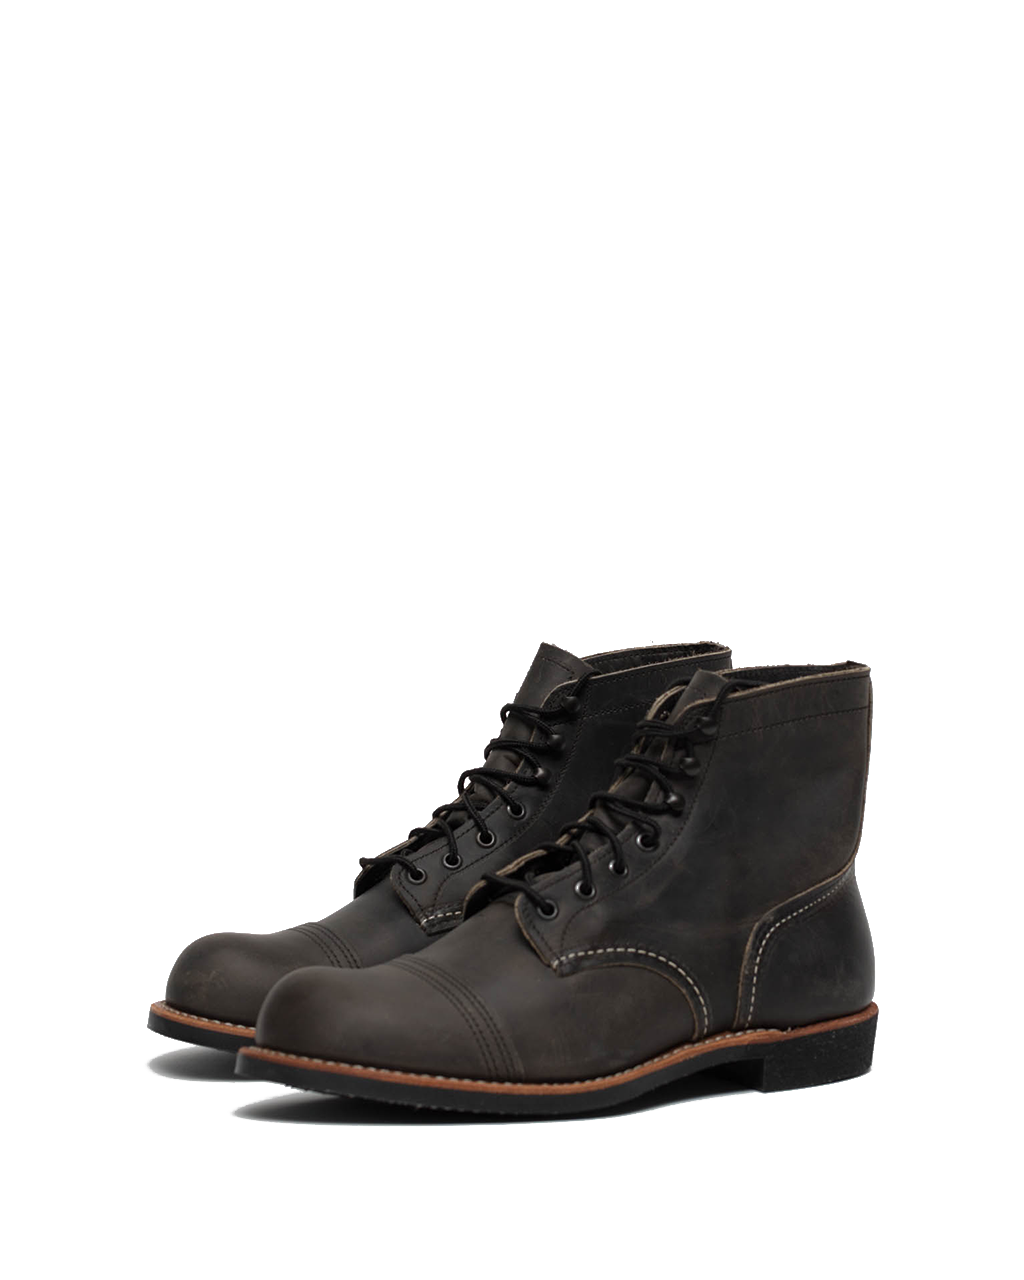 8086D - Iron Ranger Boot - Charcoal Rough & Tough